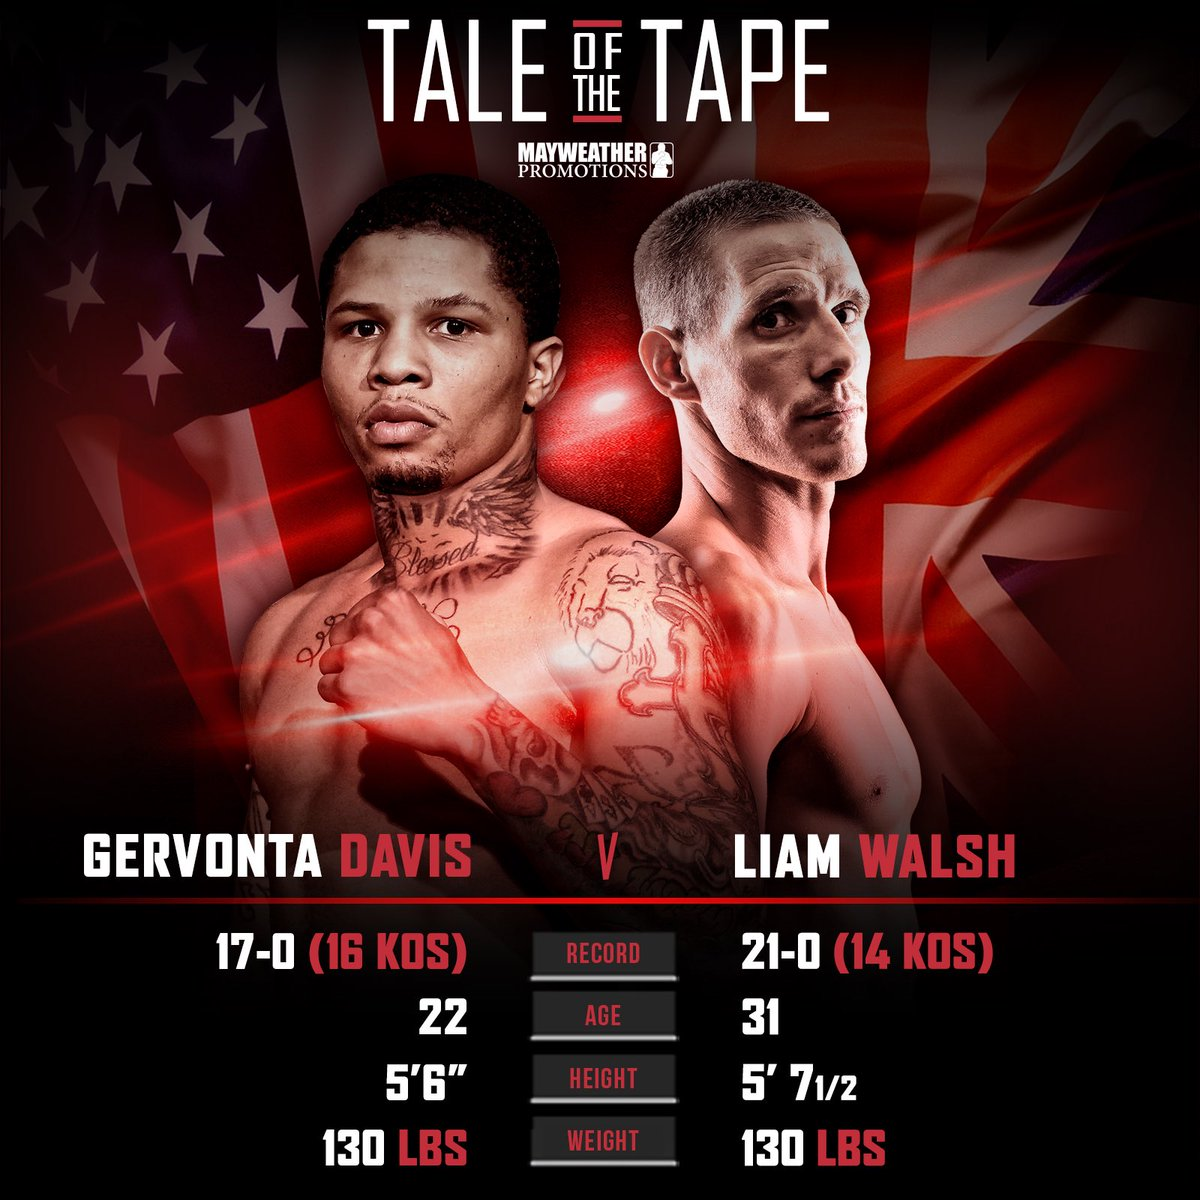 test Twitter Media - Here's the #TaleOfTheTape for tomorrow's championship bout between Gervonta Davis 17-0 (16 KOs) and Liam Walsh 21-0 (14 KOs) #DavisWalsh 🥊 https://t.co/3Oq3cVEyBp